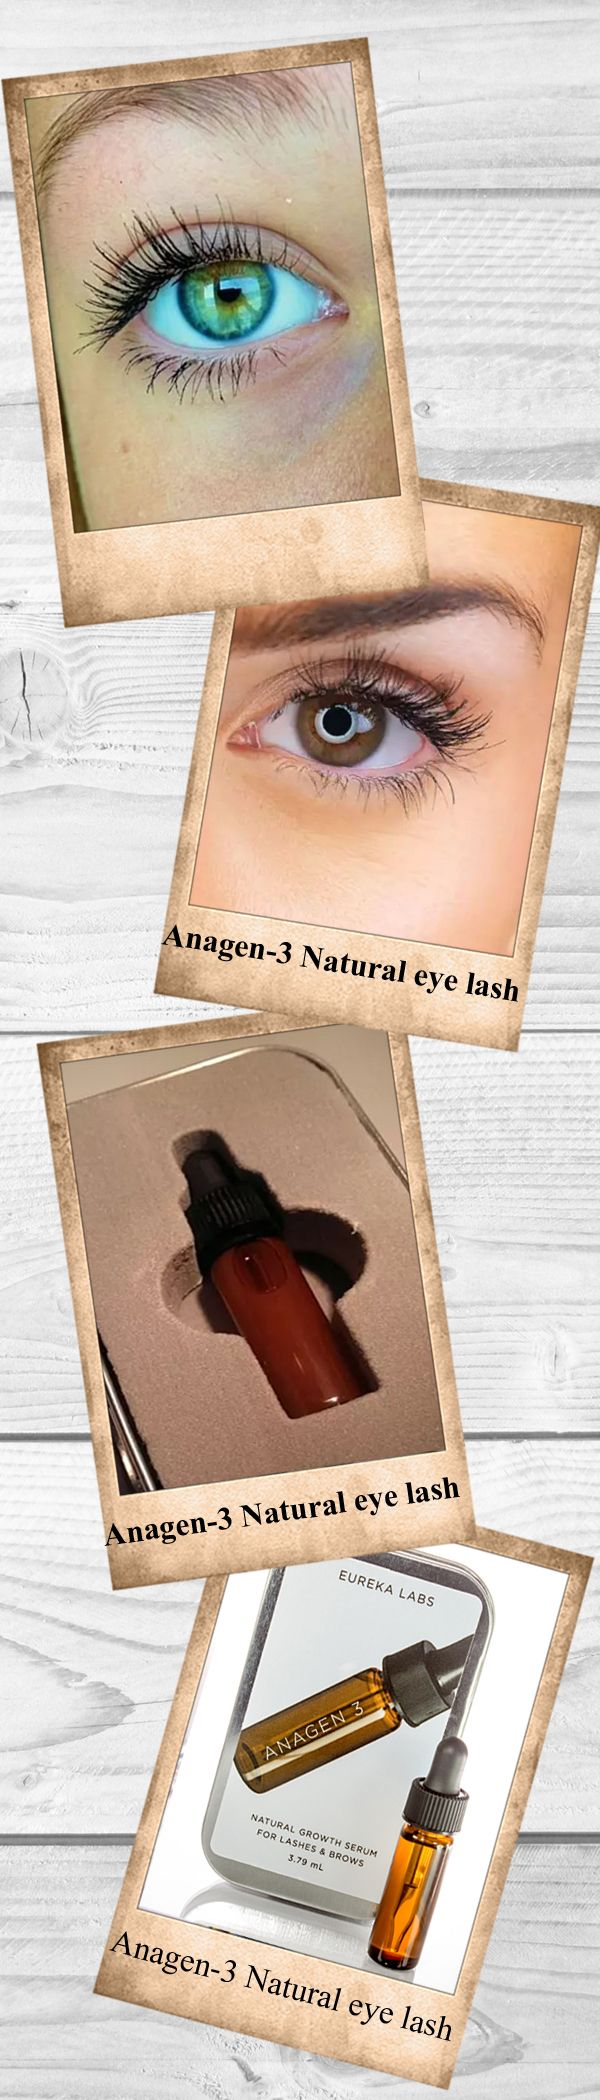 Our unique 100% natural peptide formula promotes rapid lash growth. As a result of our lash formula your existing lashes will lengthen while new lashes regrow at the same time, producing visibly dramatic results. We guarantee it!